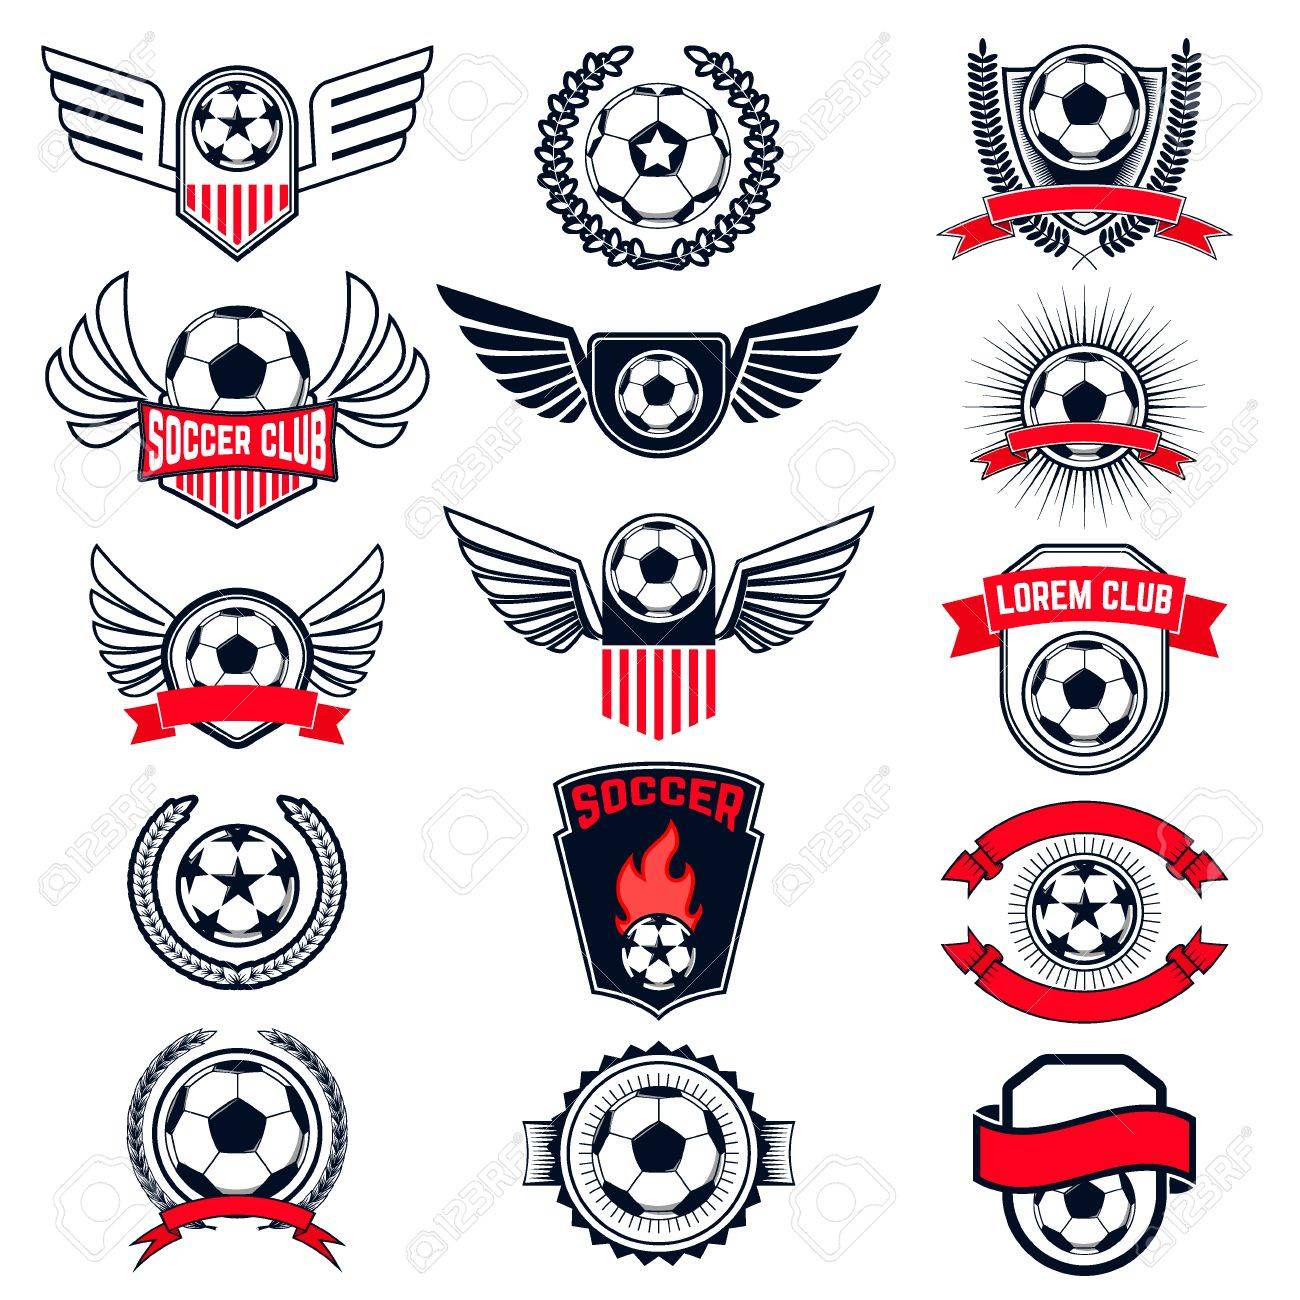 Set of Soccer logos, badges and design elements. Collection symbol of football: soccer ball, heraldry, insignia. Vector illustration. - 49541012